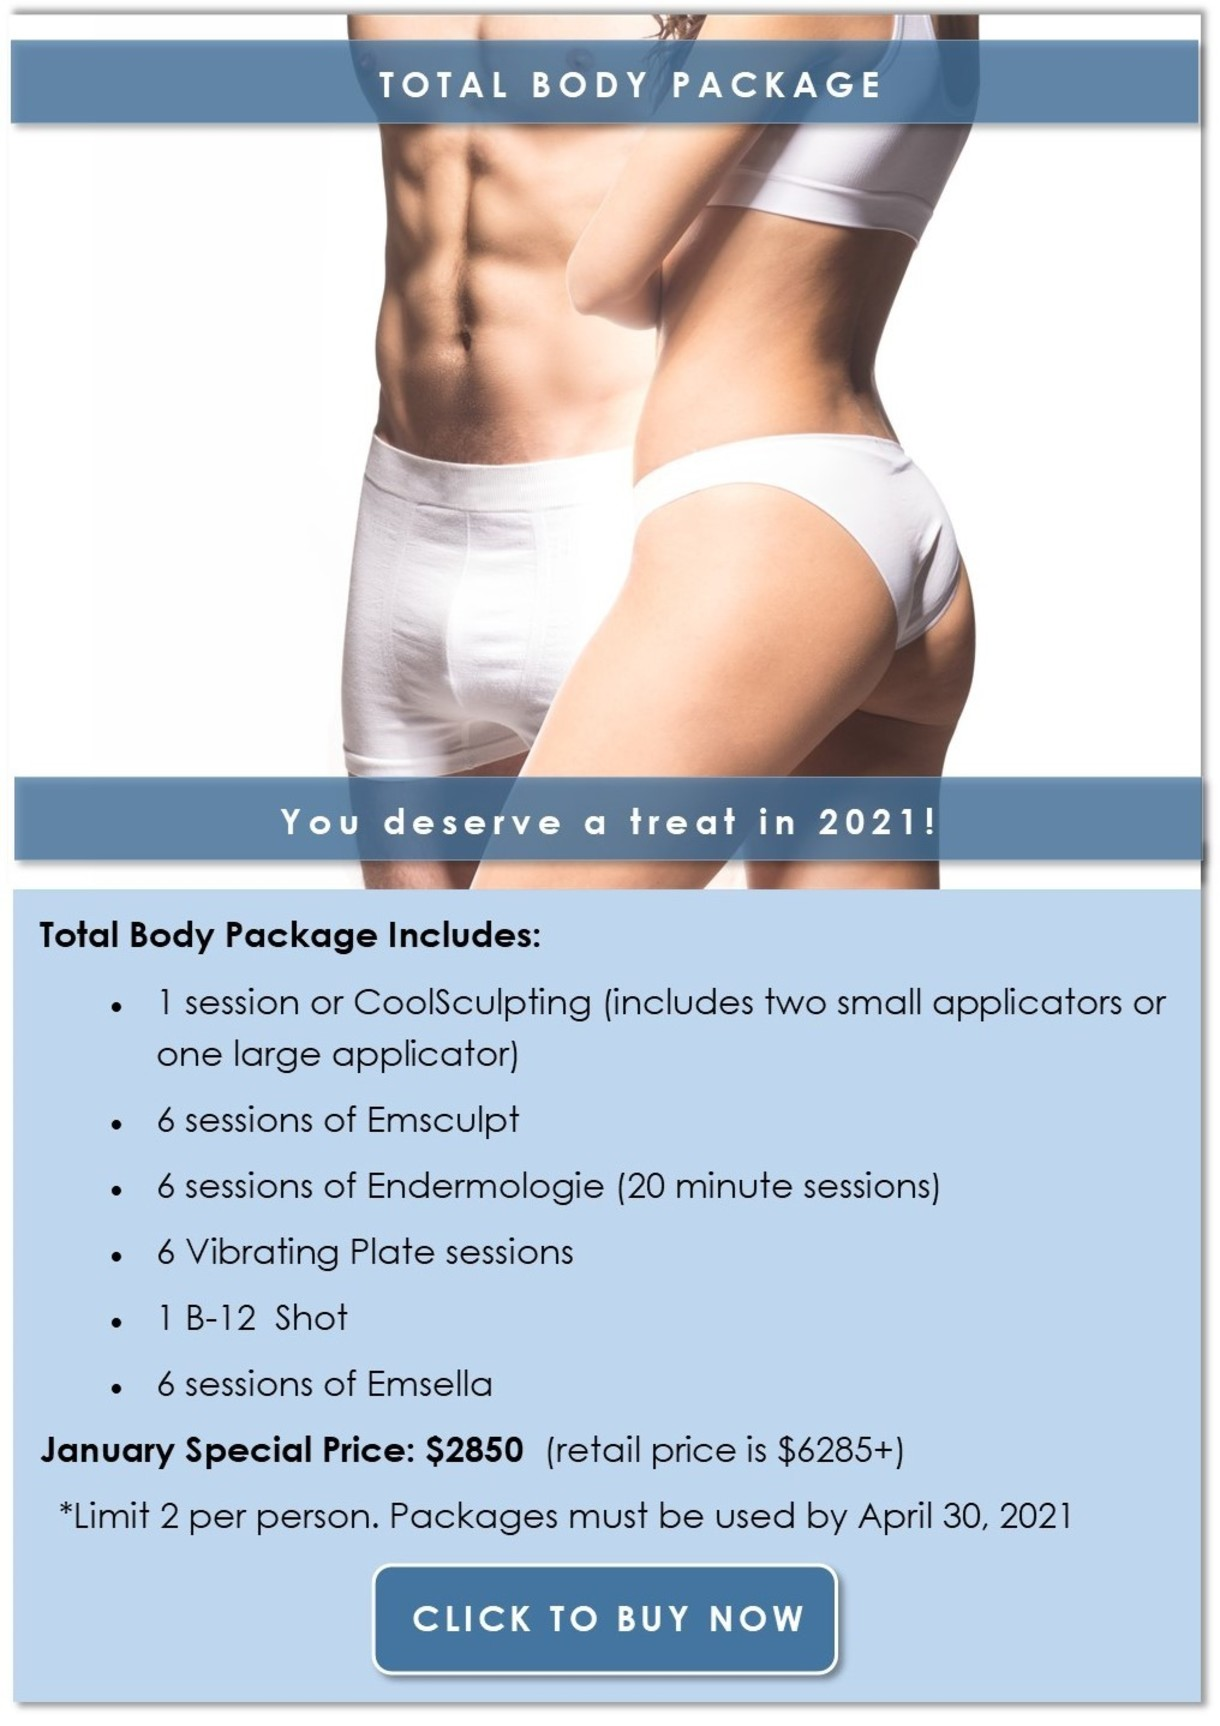 Purchase the Total Body Package